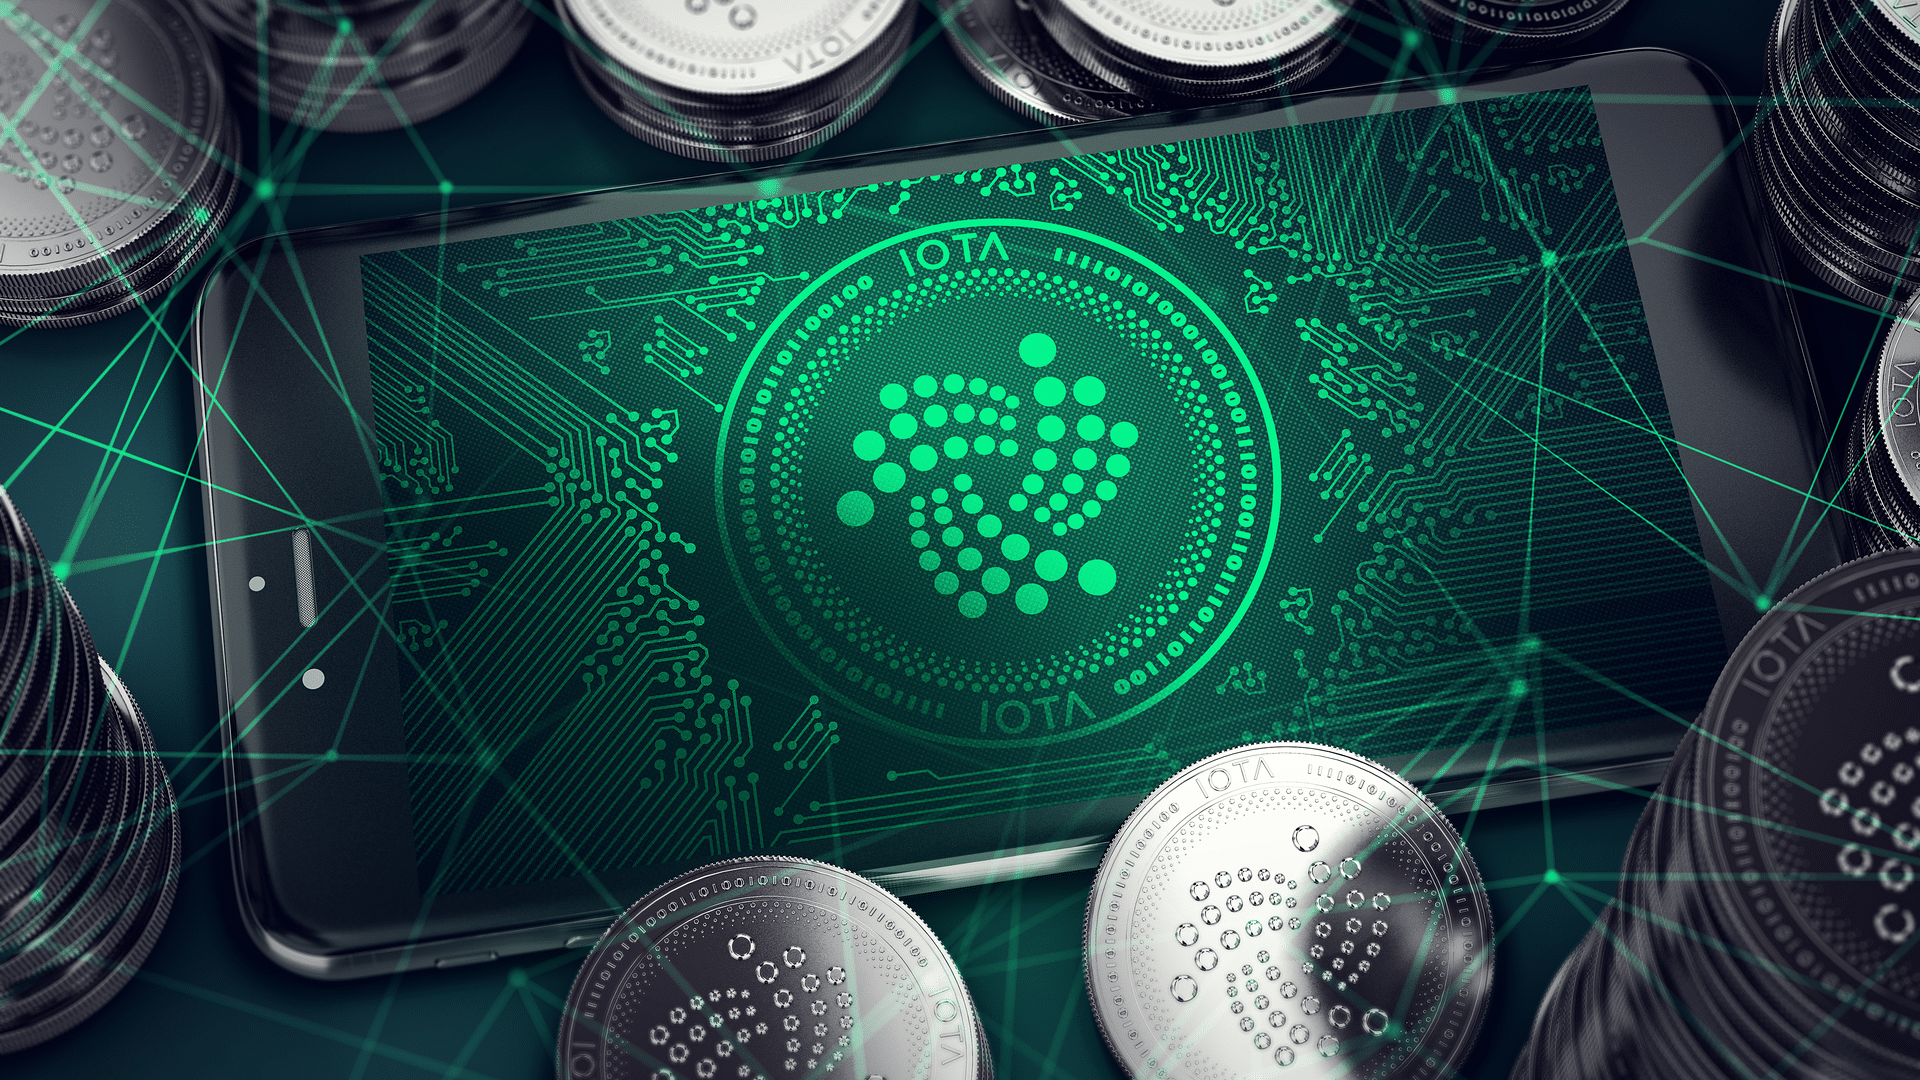 buy iota cryptocurrency app